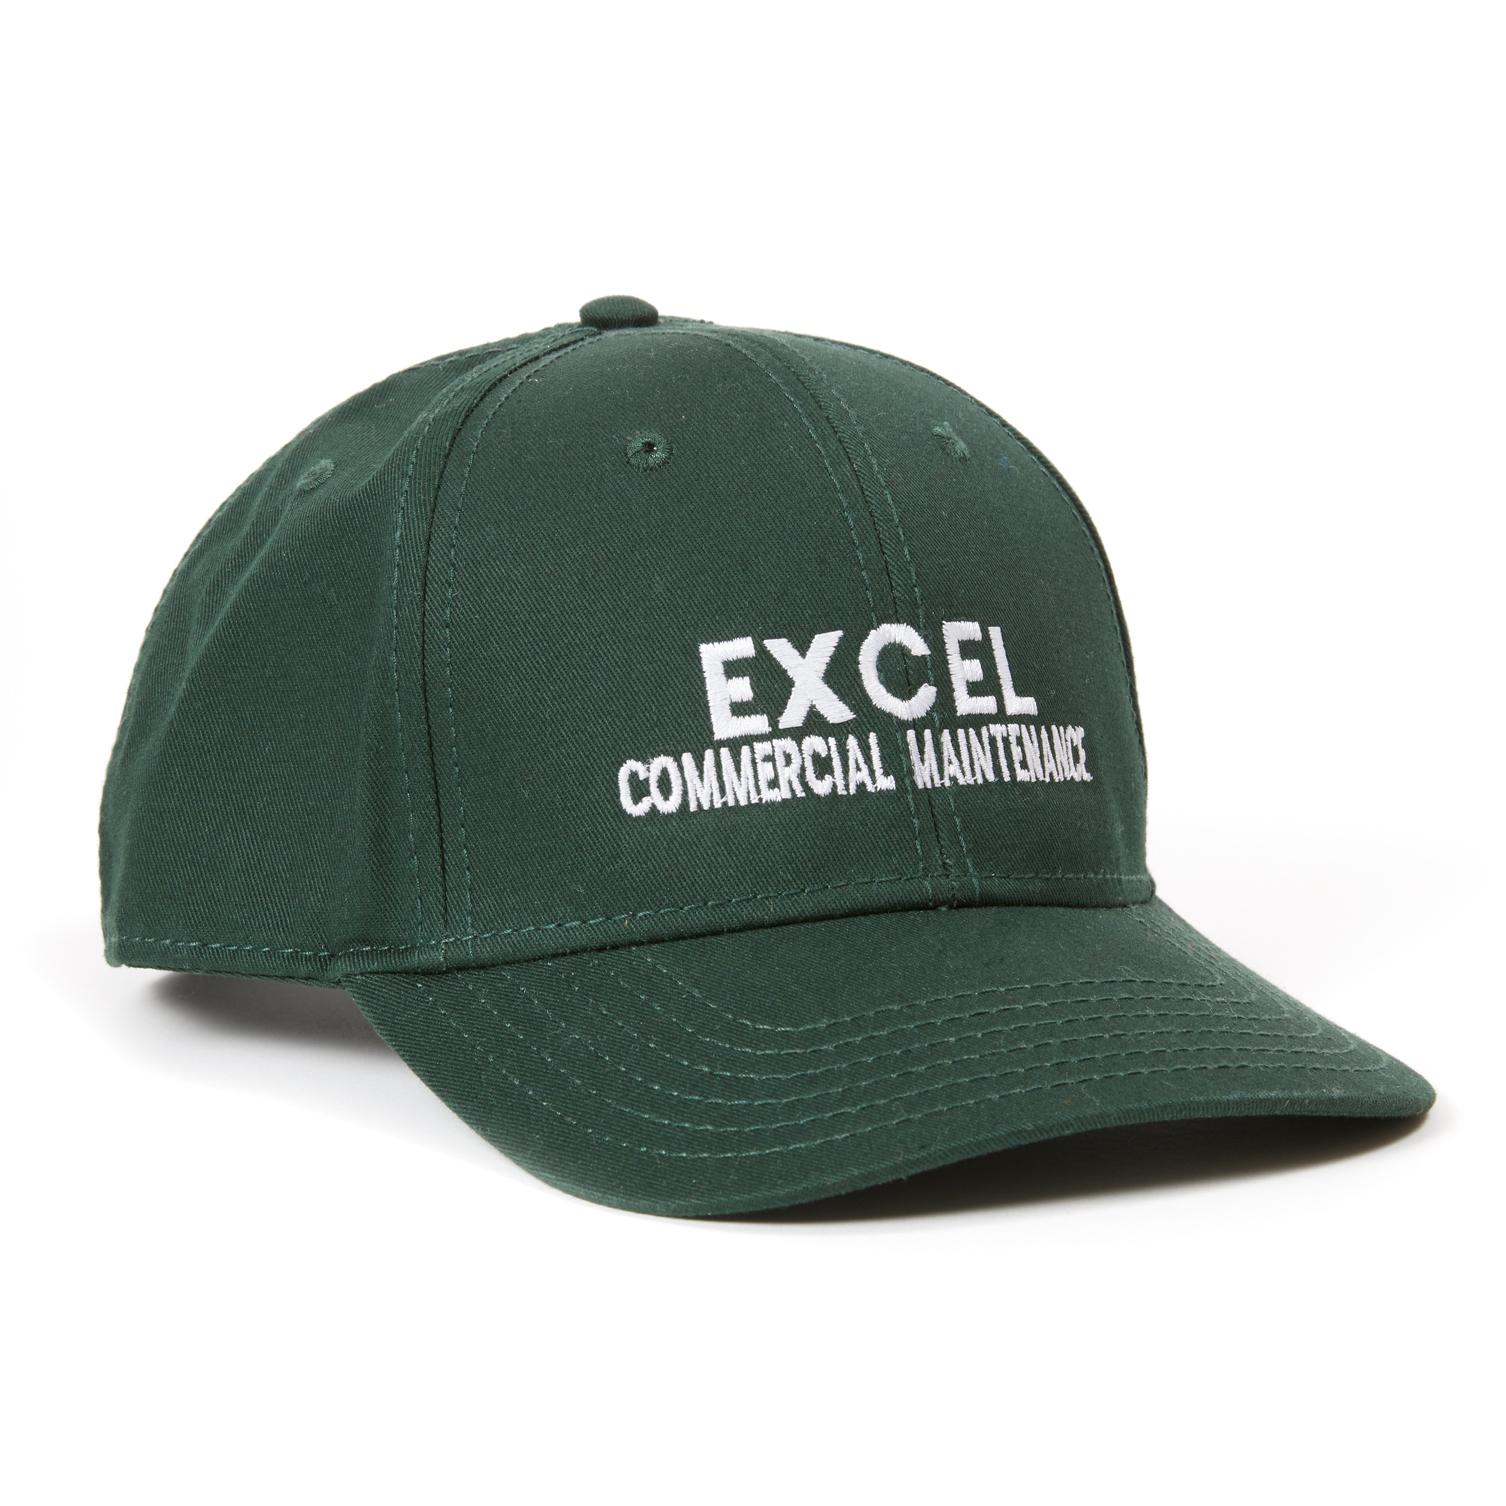 excel-commercial-maintenance-hat